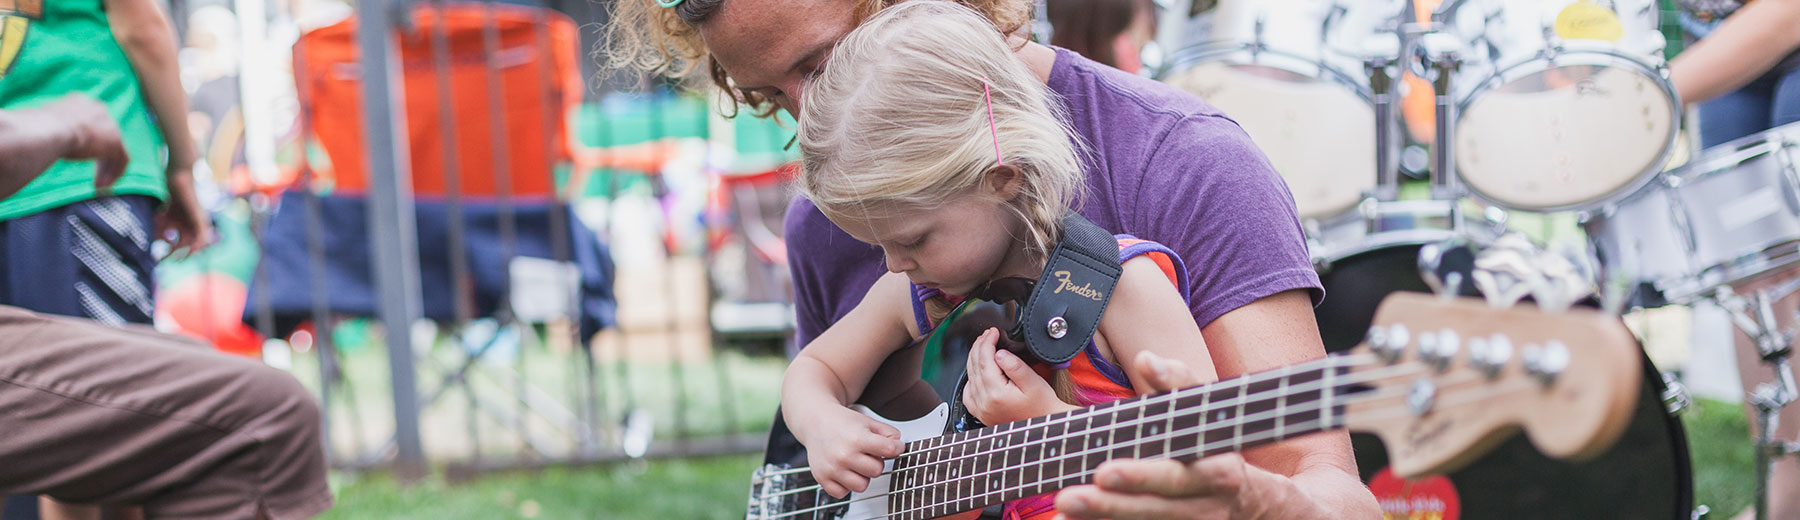 Kids Music Festival - Bohemian Nights at NewWestFest